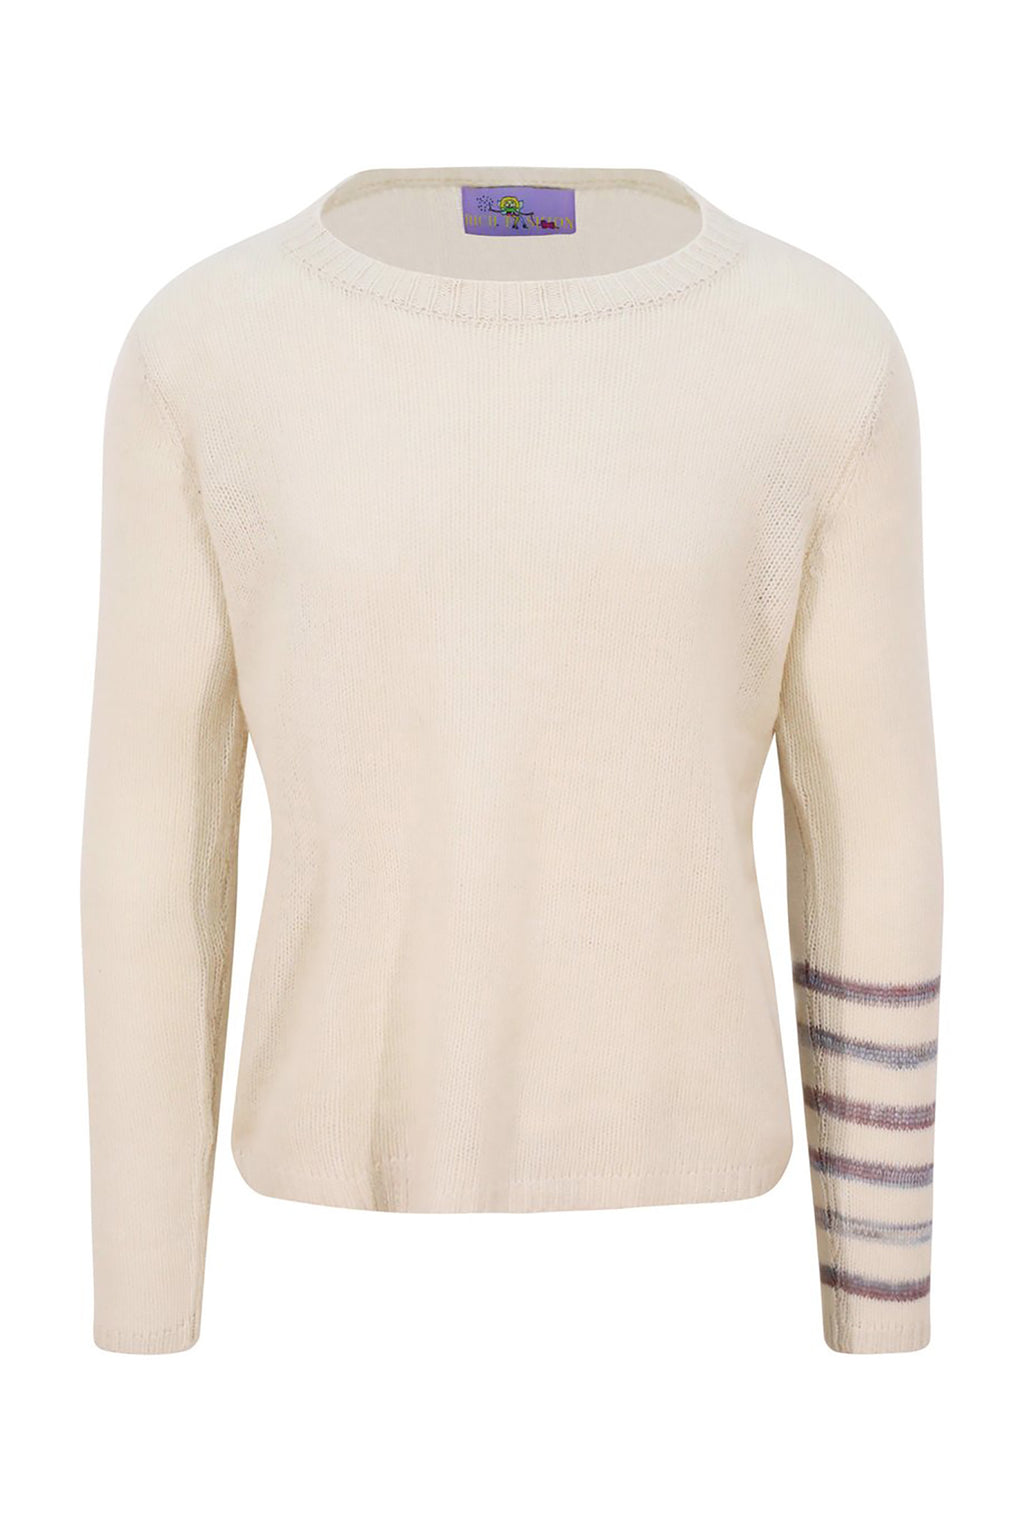 Adrian Unisex Striped Arm Cashmere Sweater